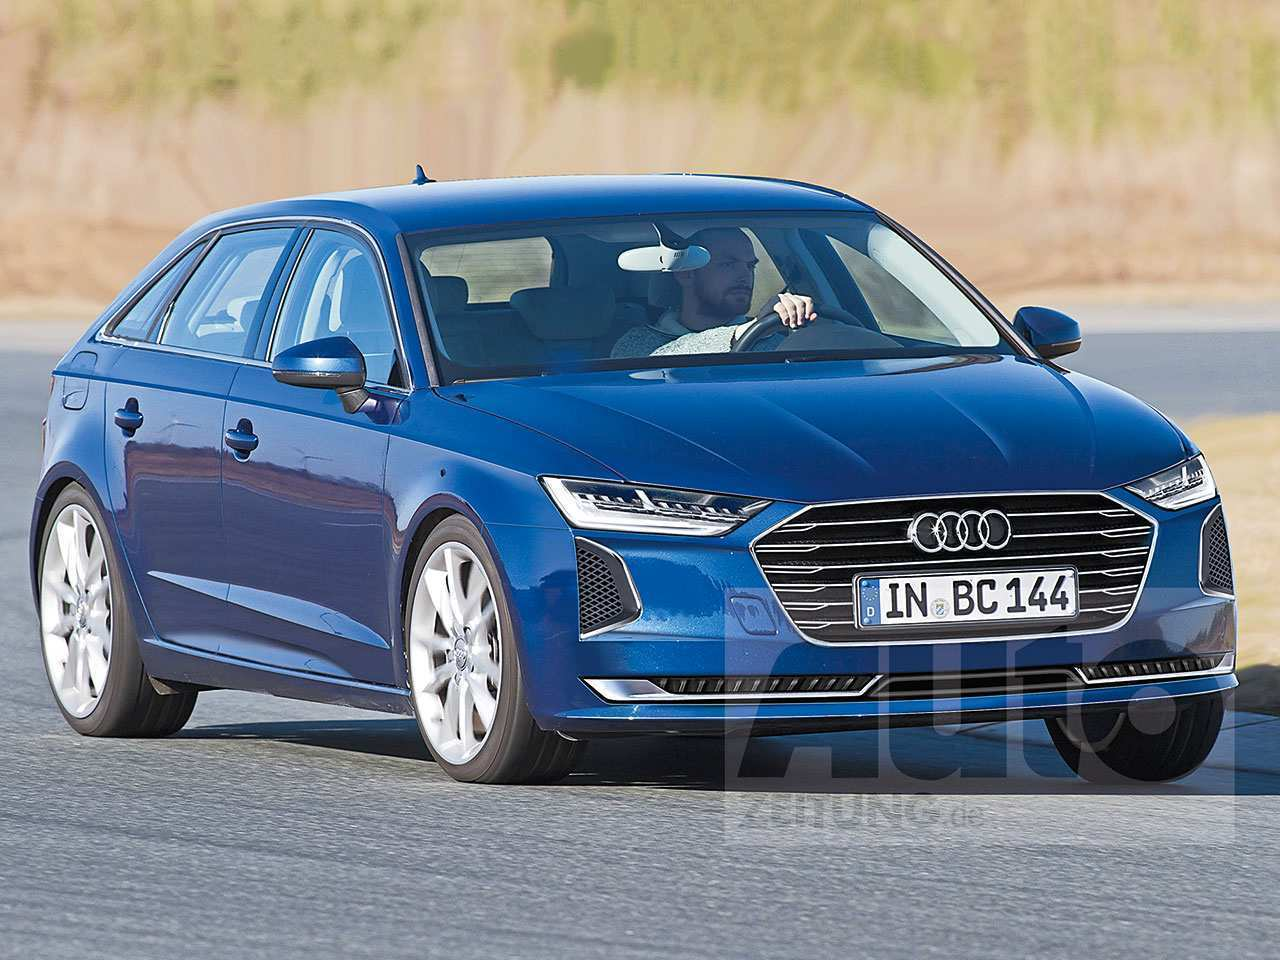 54 The Best 2020 Audi A5 Style